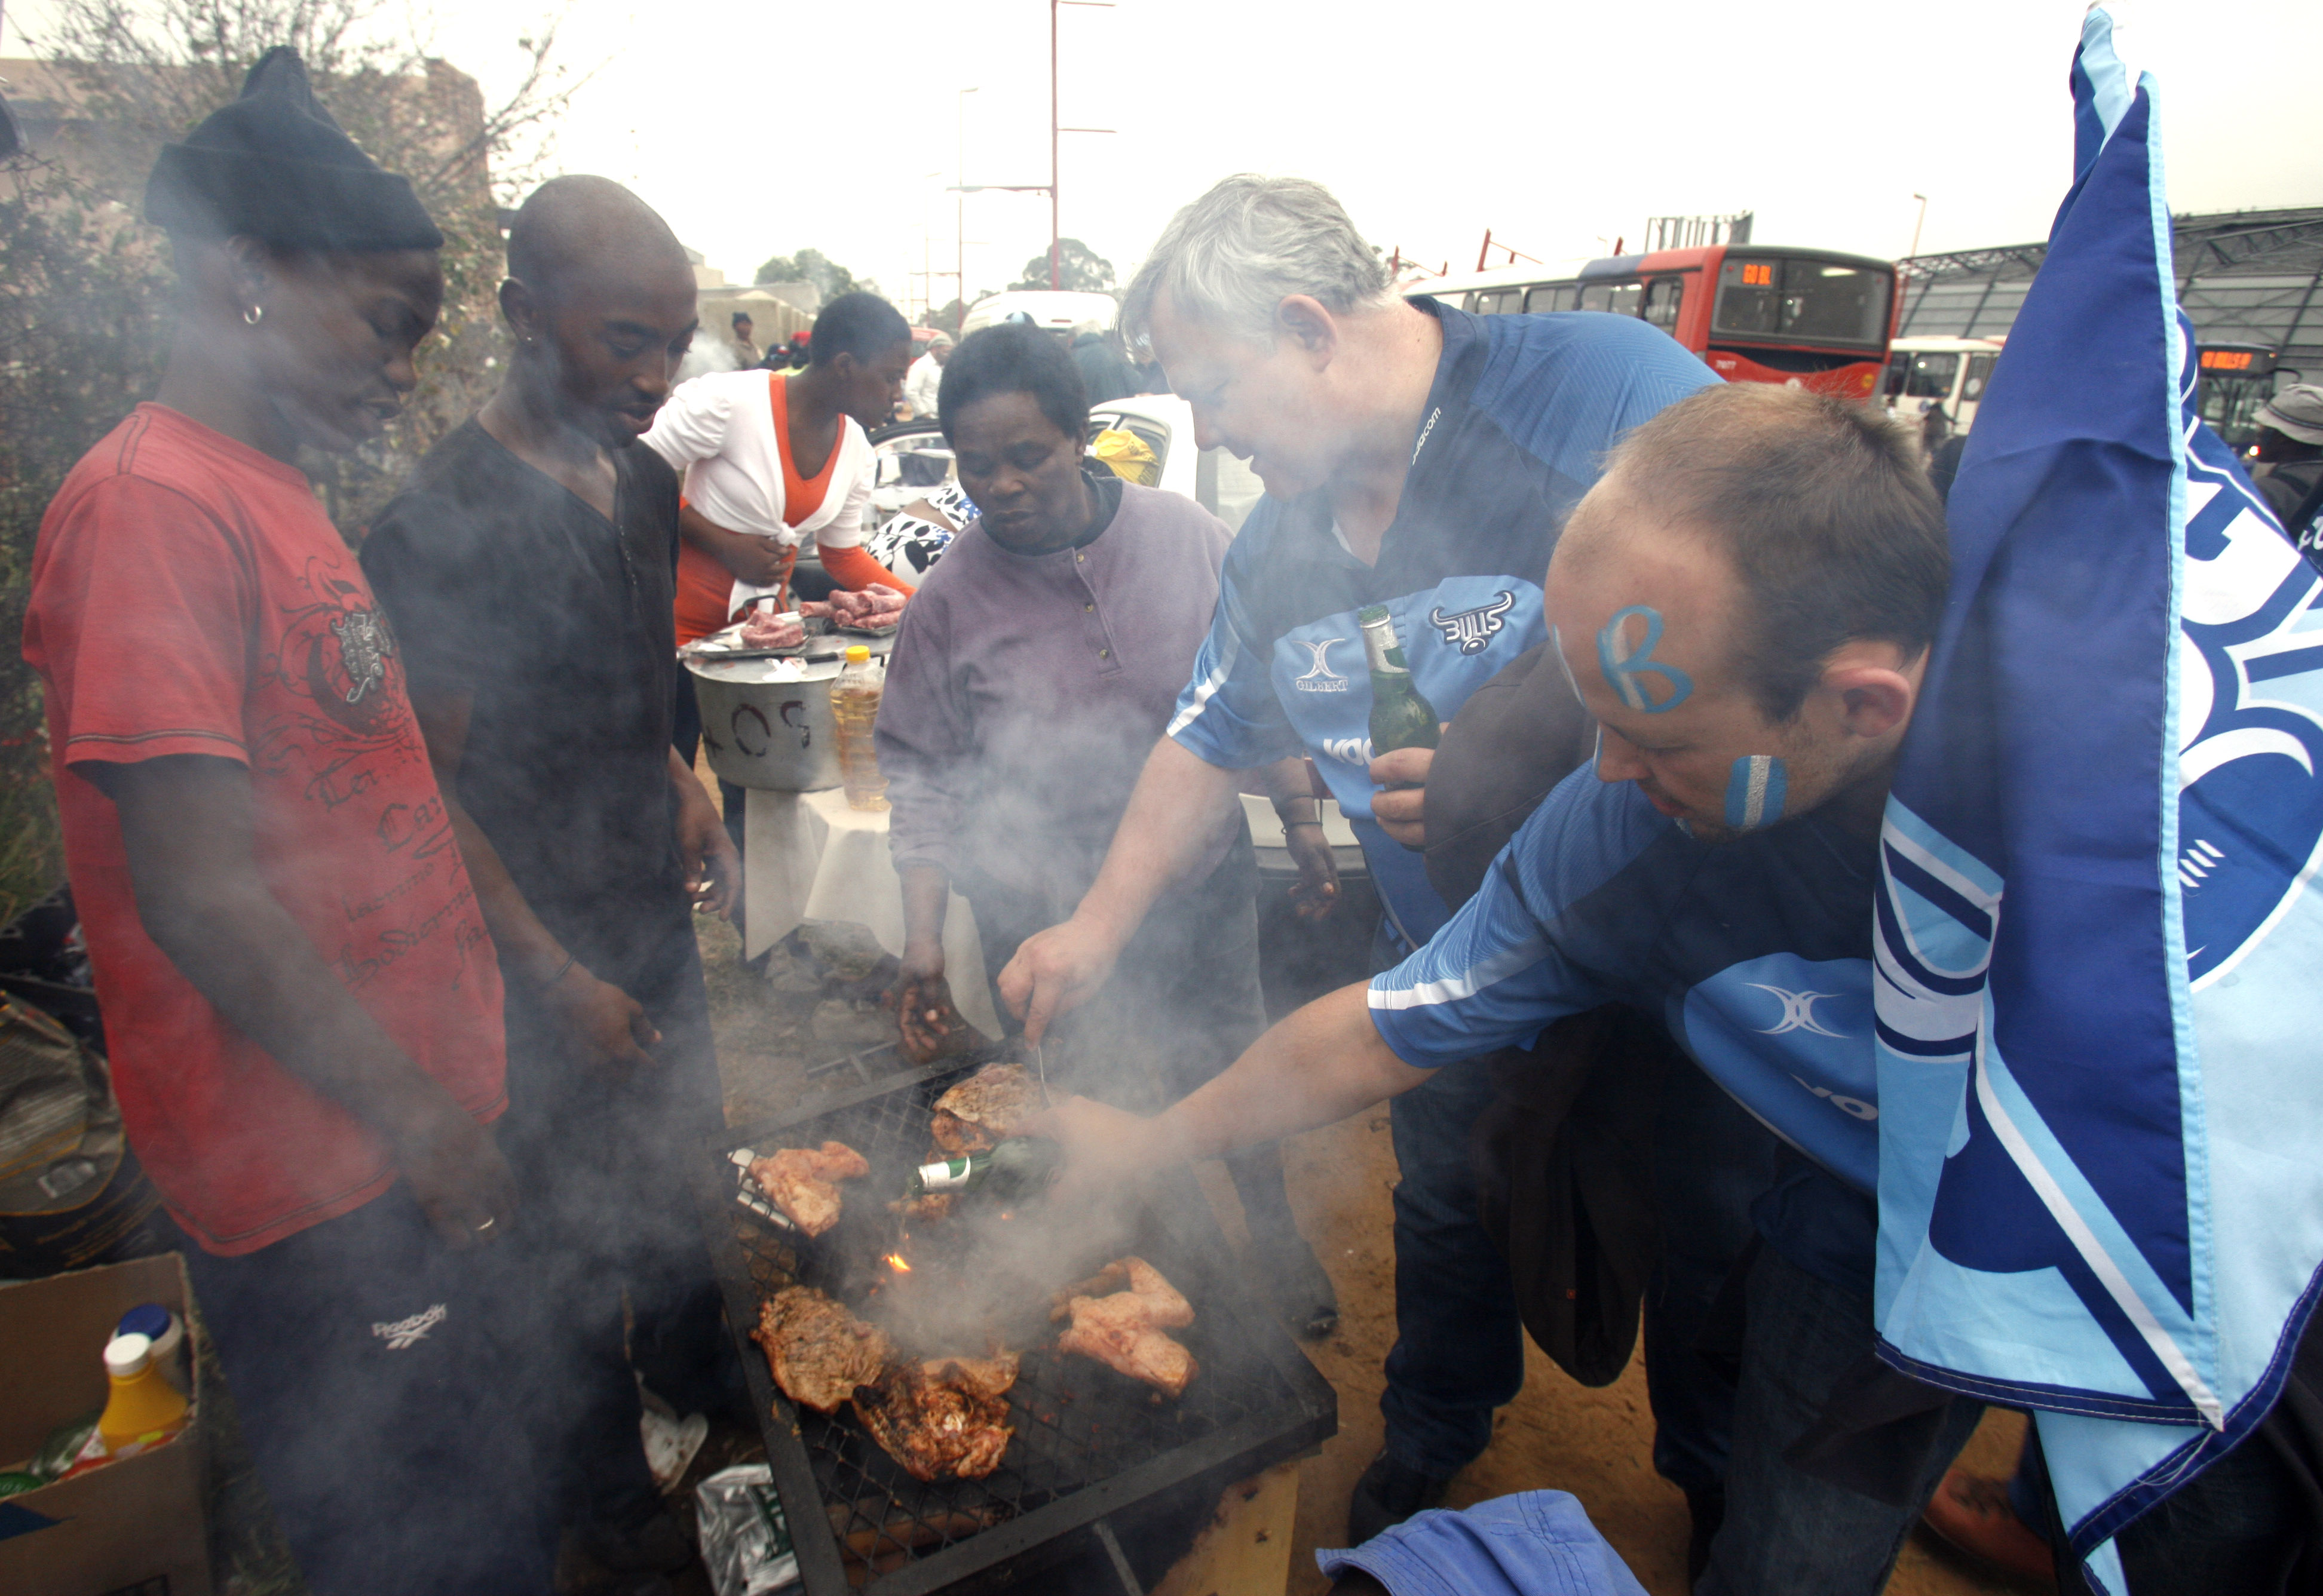 Bulls supporter pour some beer onto their braai meat at a local shebeen or bar, before a kick-off for the finals of the Super 14 rugby match against Stormers at the Orlando stadium in Soweto, South Africa, Saturday May 29, 2010. (AP Photo/Themba Hadebe)